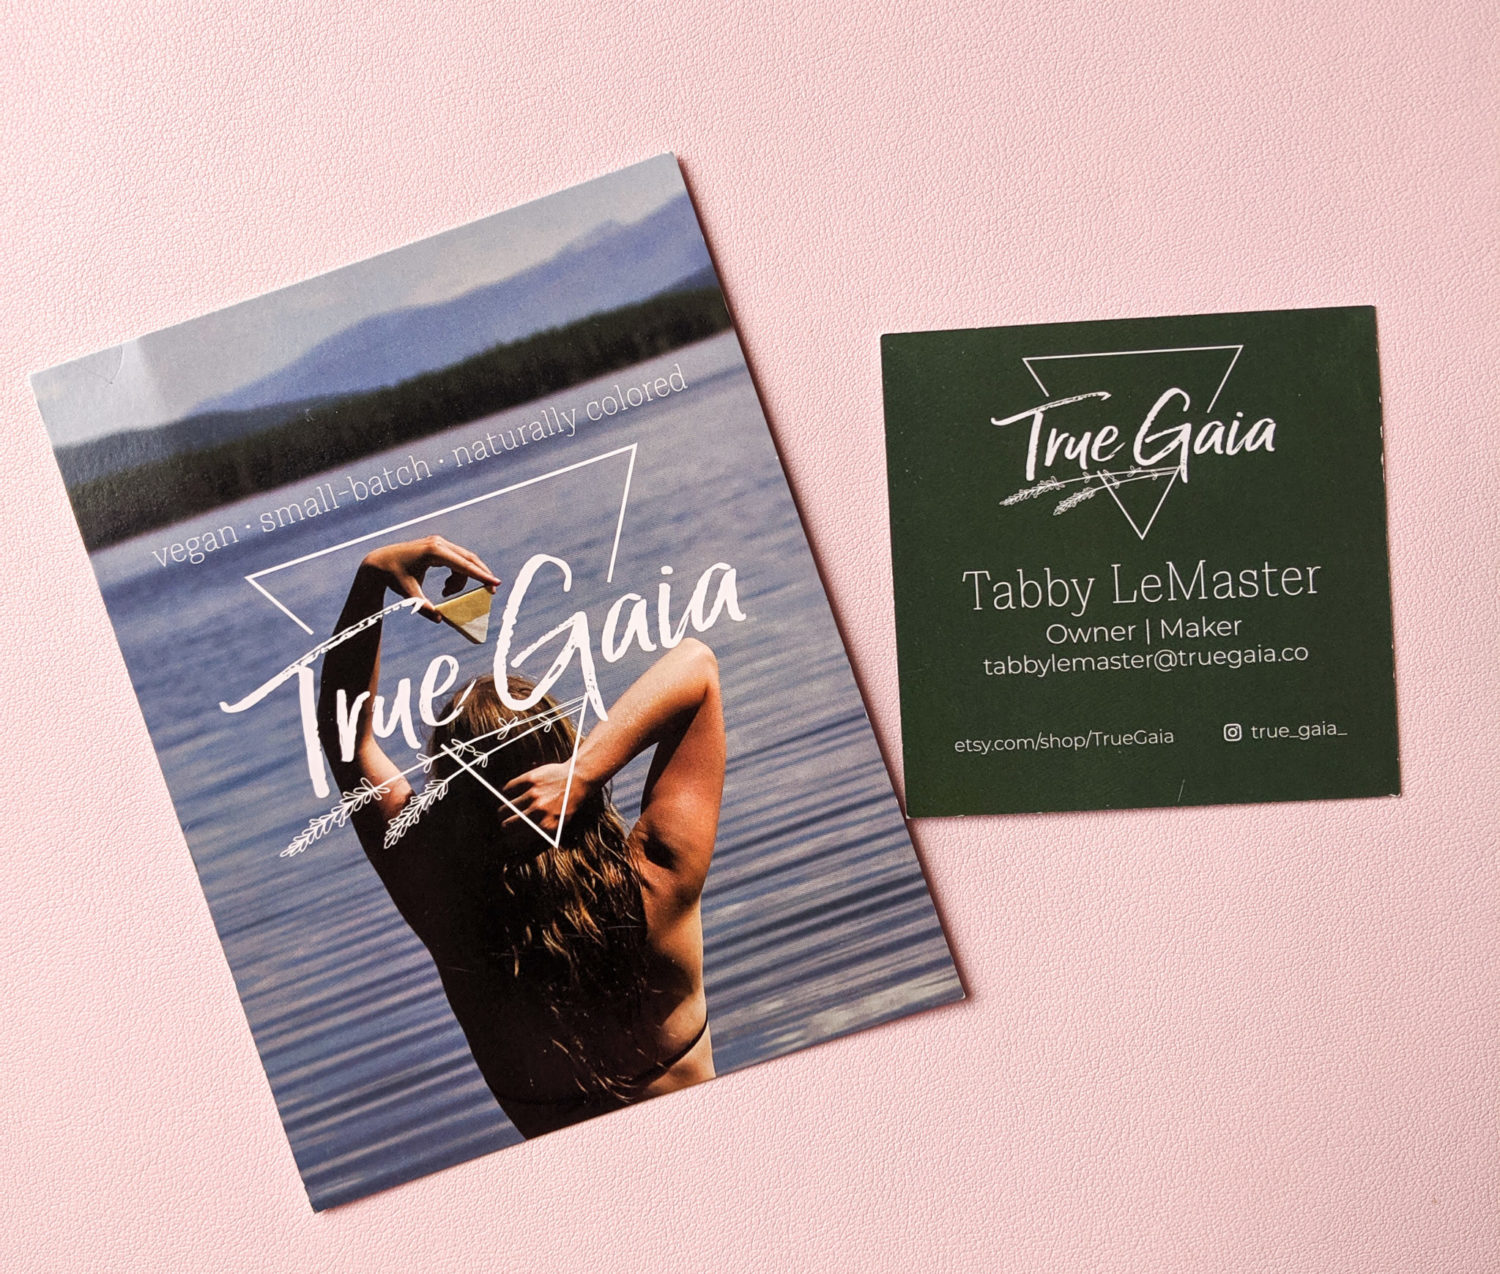 true-gaia-printed-materials-2